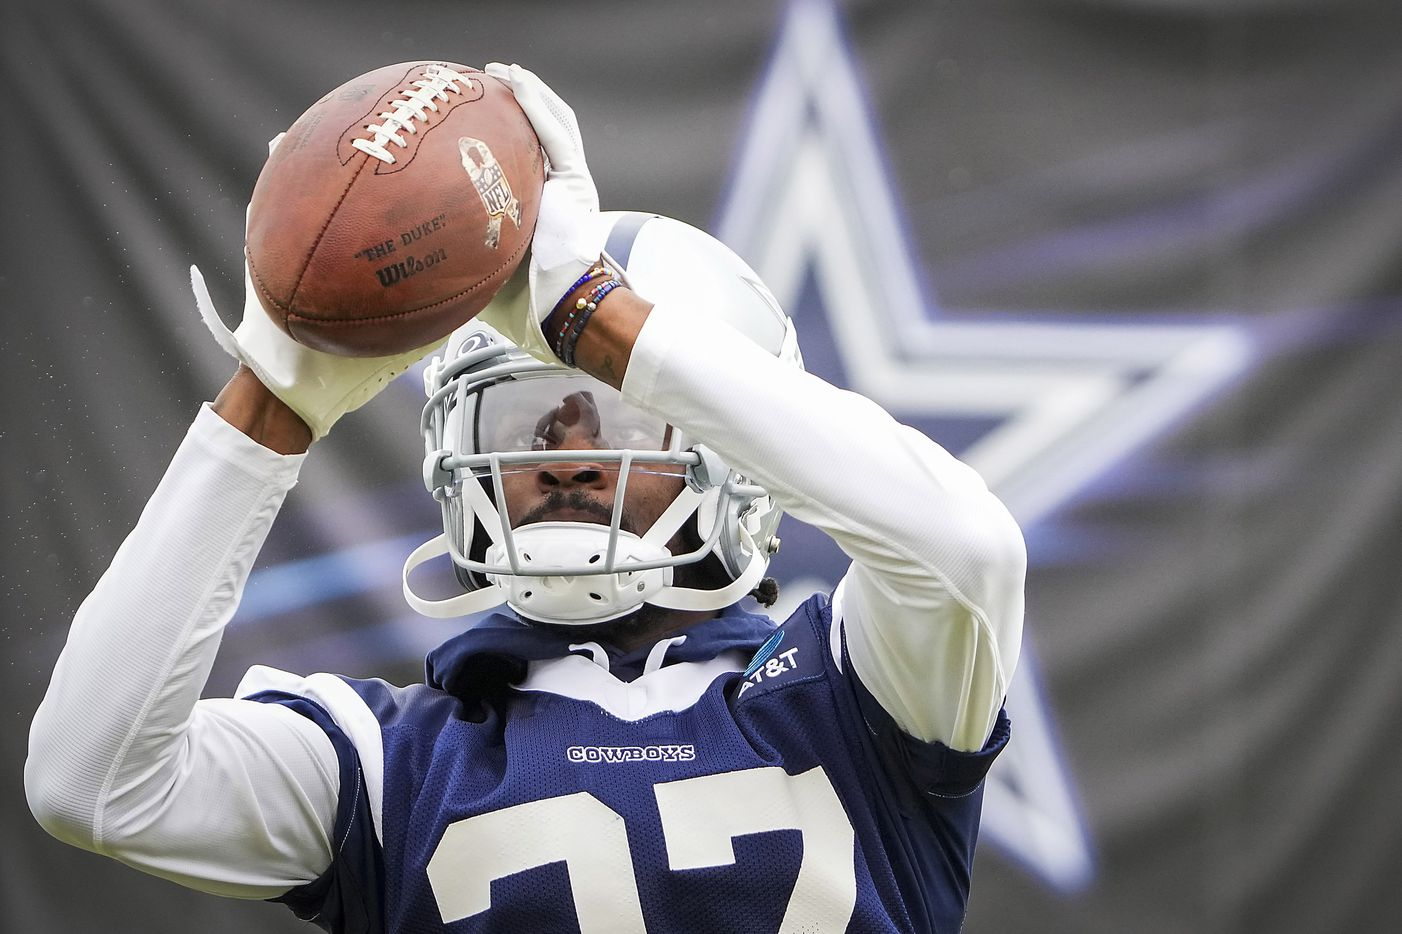 Dallas Cowboys cornerback Trevon Diggs catches a ball during drill at training camp on Sunday, July 25, 2021, in Oxnard, Calif.